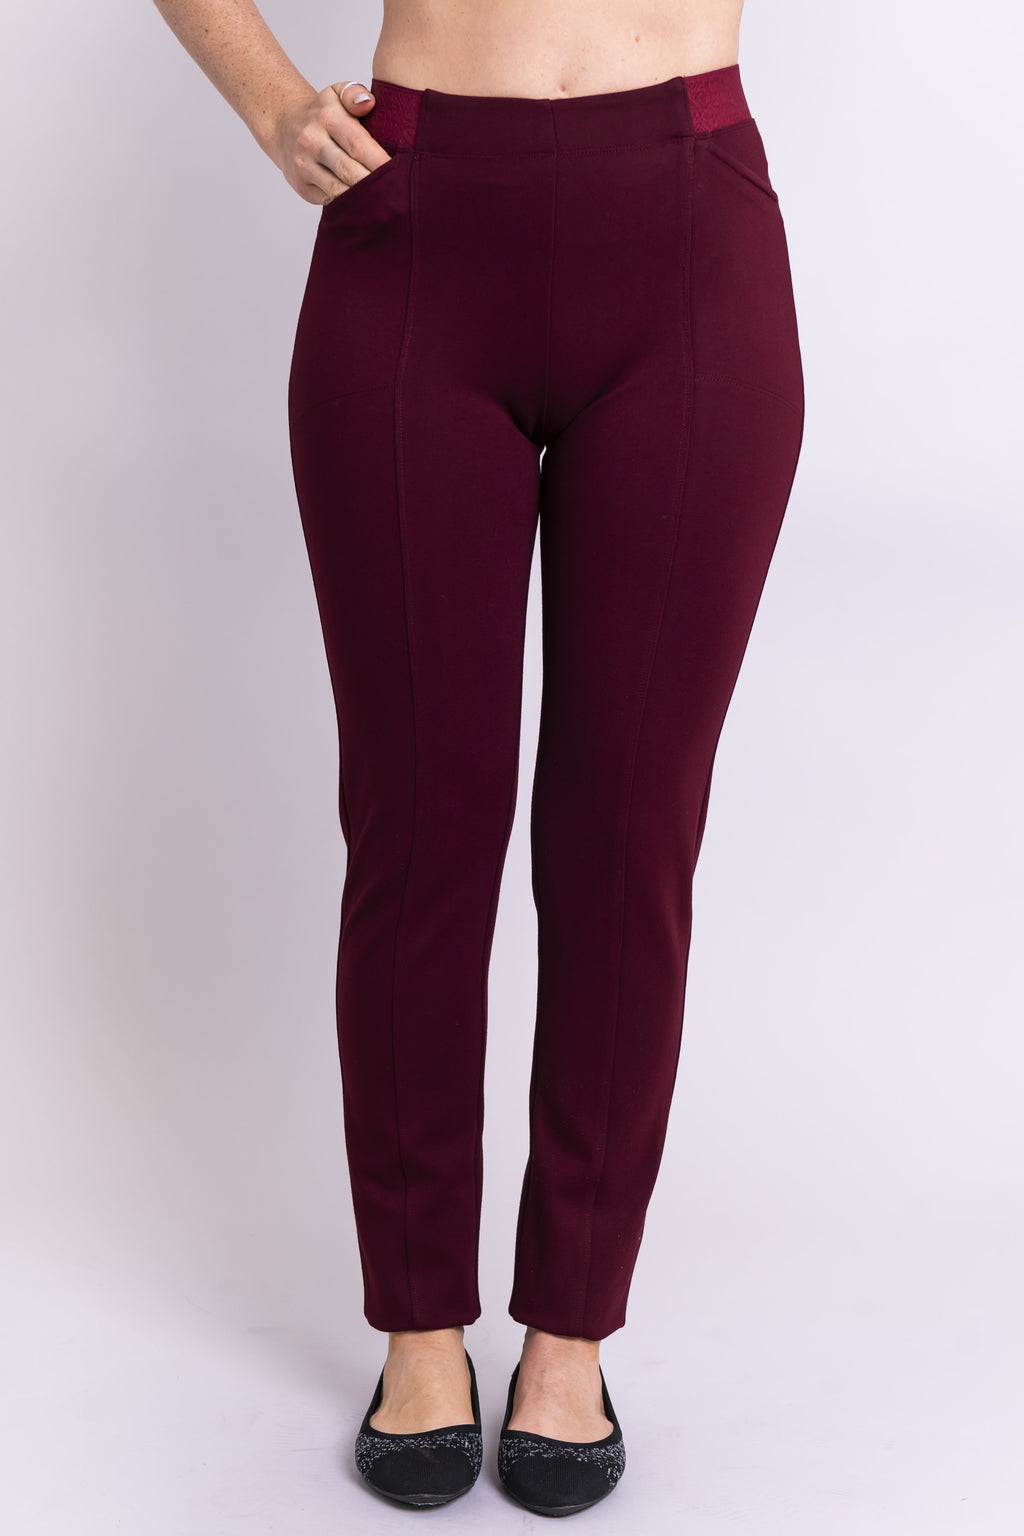 Front view of women's petite burgundy tailored pant, with slim and narrow leg. Made of sustainable and natural bamboo fibers, fair-trade.